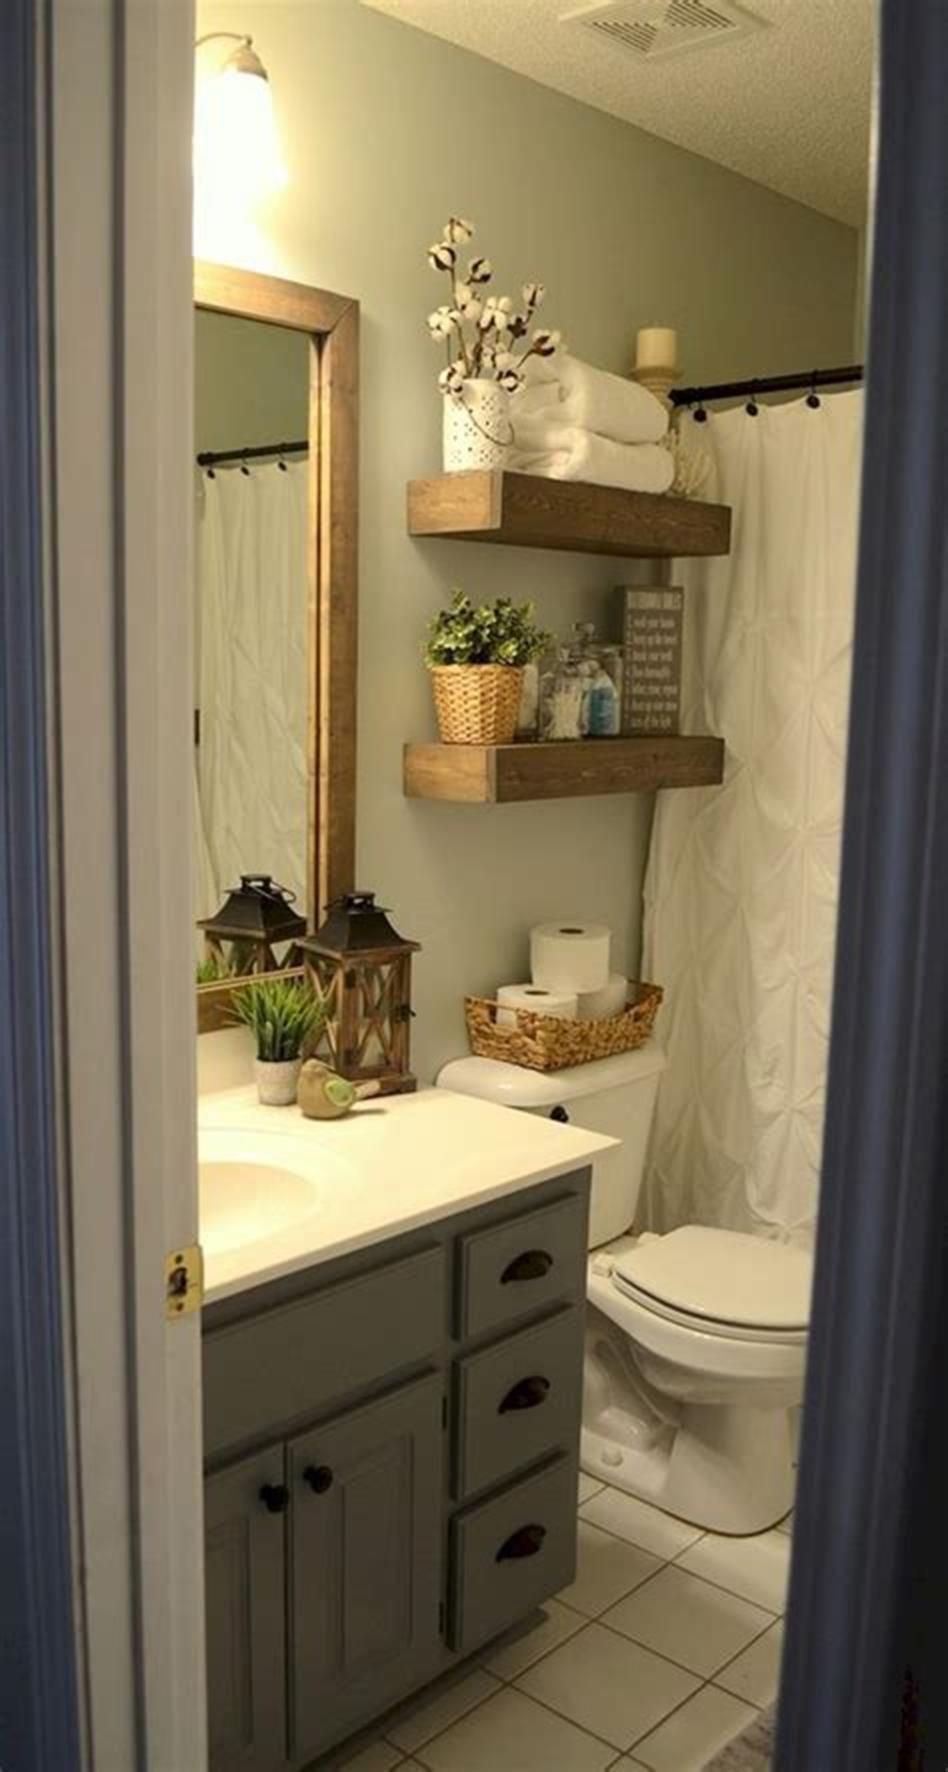 small bathroom design ideas on a budget 40 most popular half bathroom decor ideas 2019 restroom remodel home remodeling modern 5341